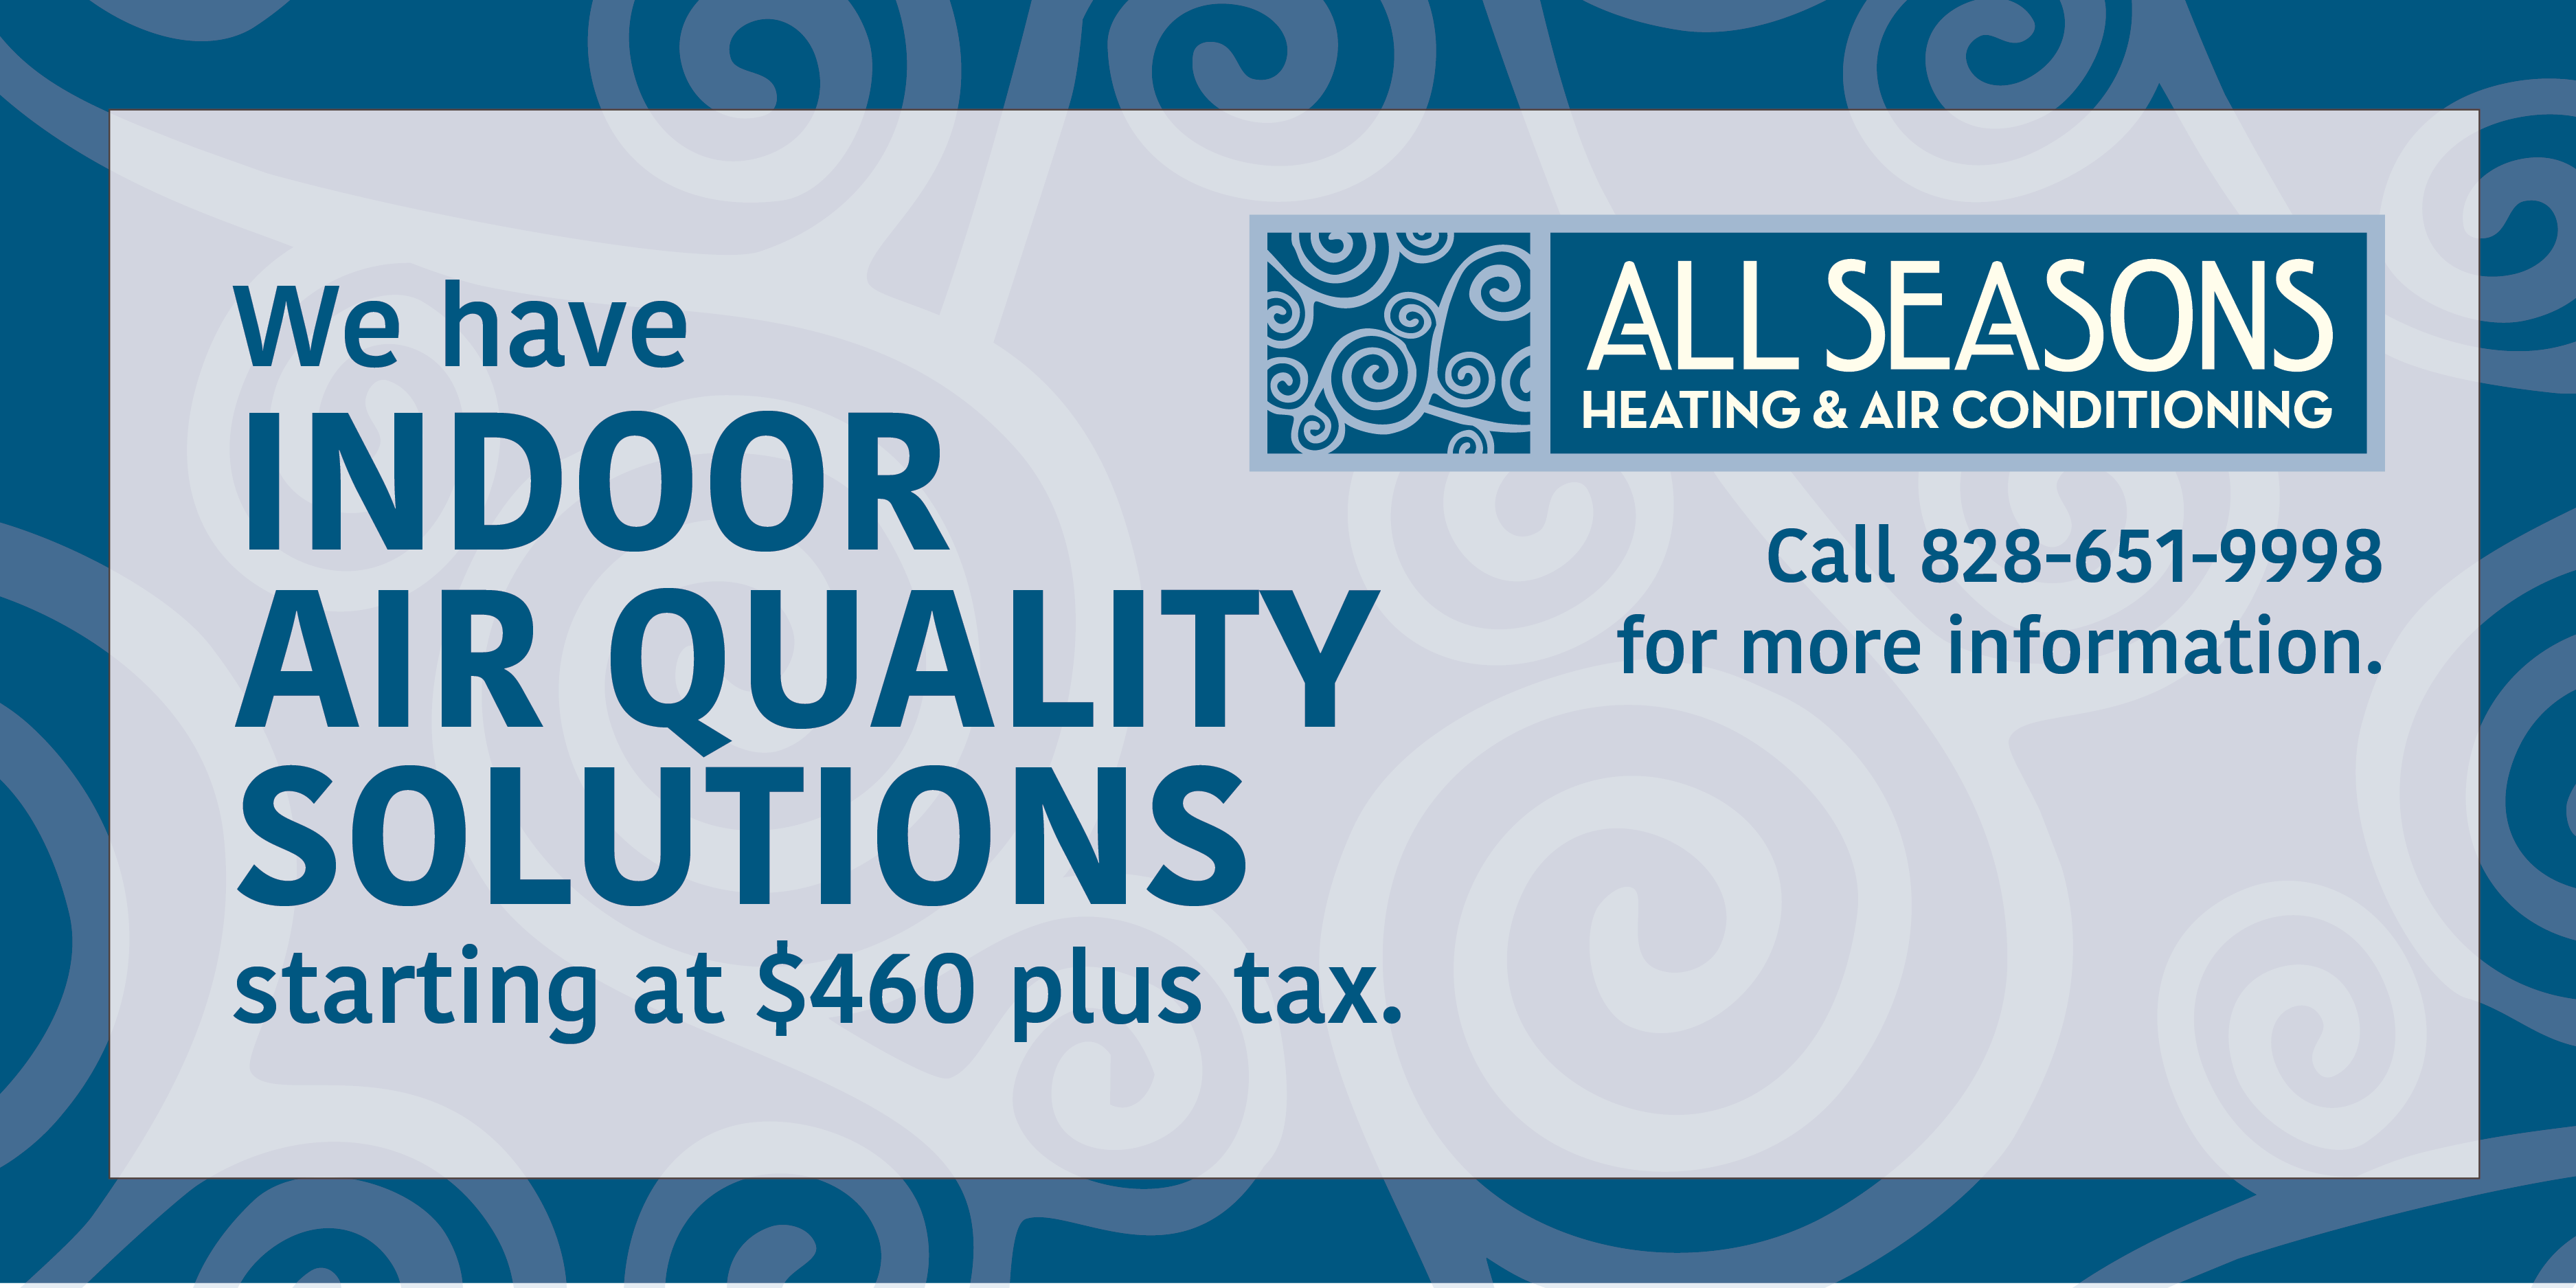 All Season's Heating and Air Conditioning special on indoor air quality.